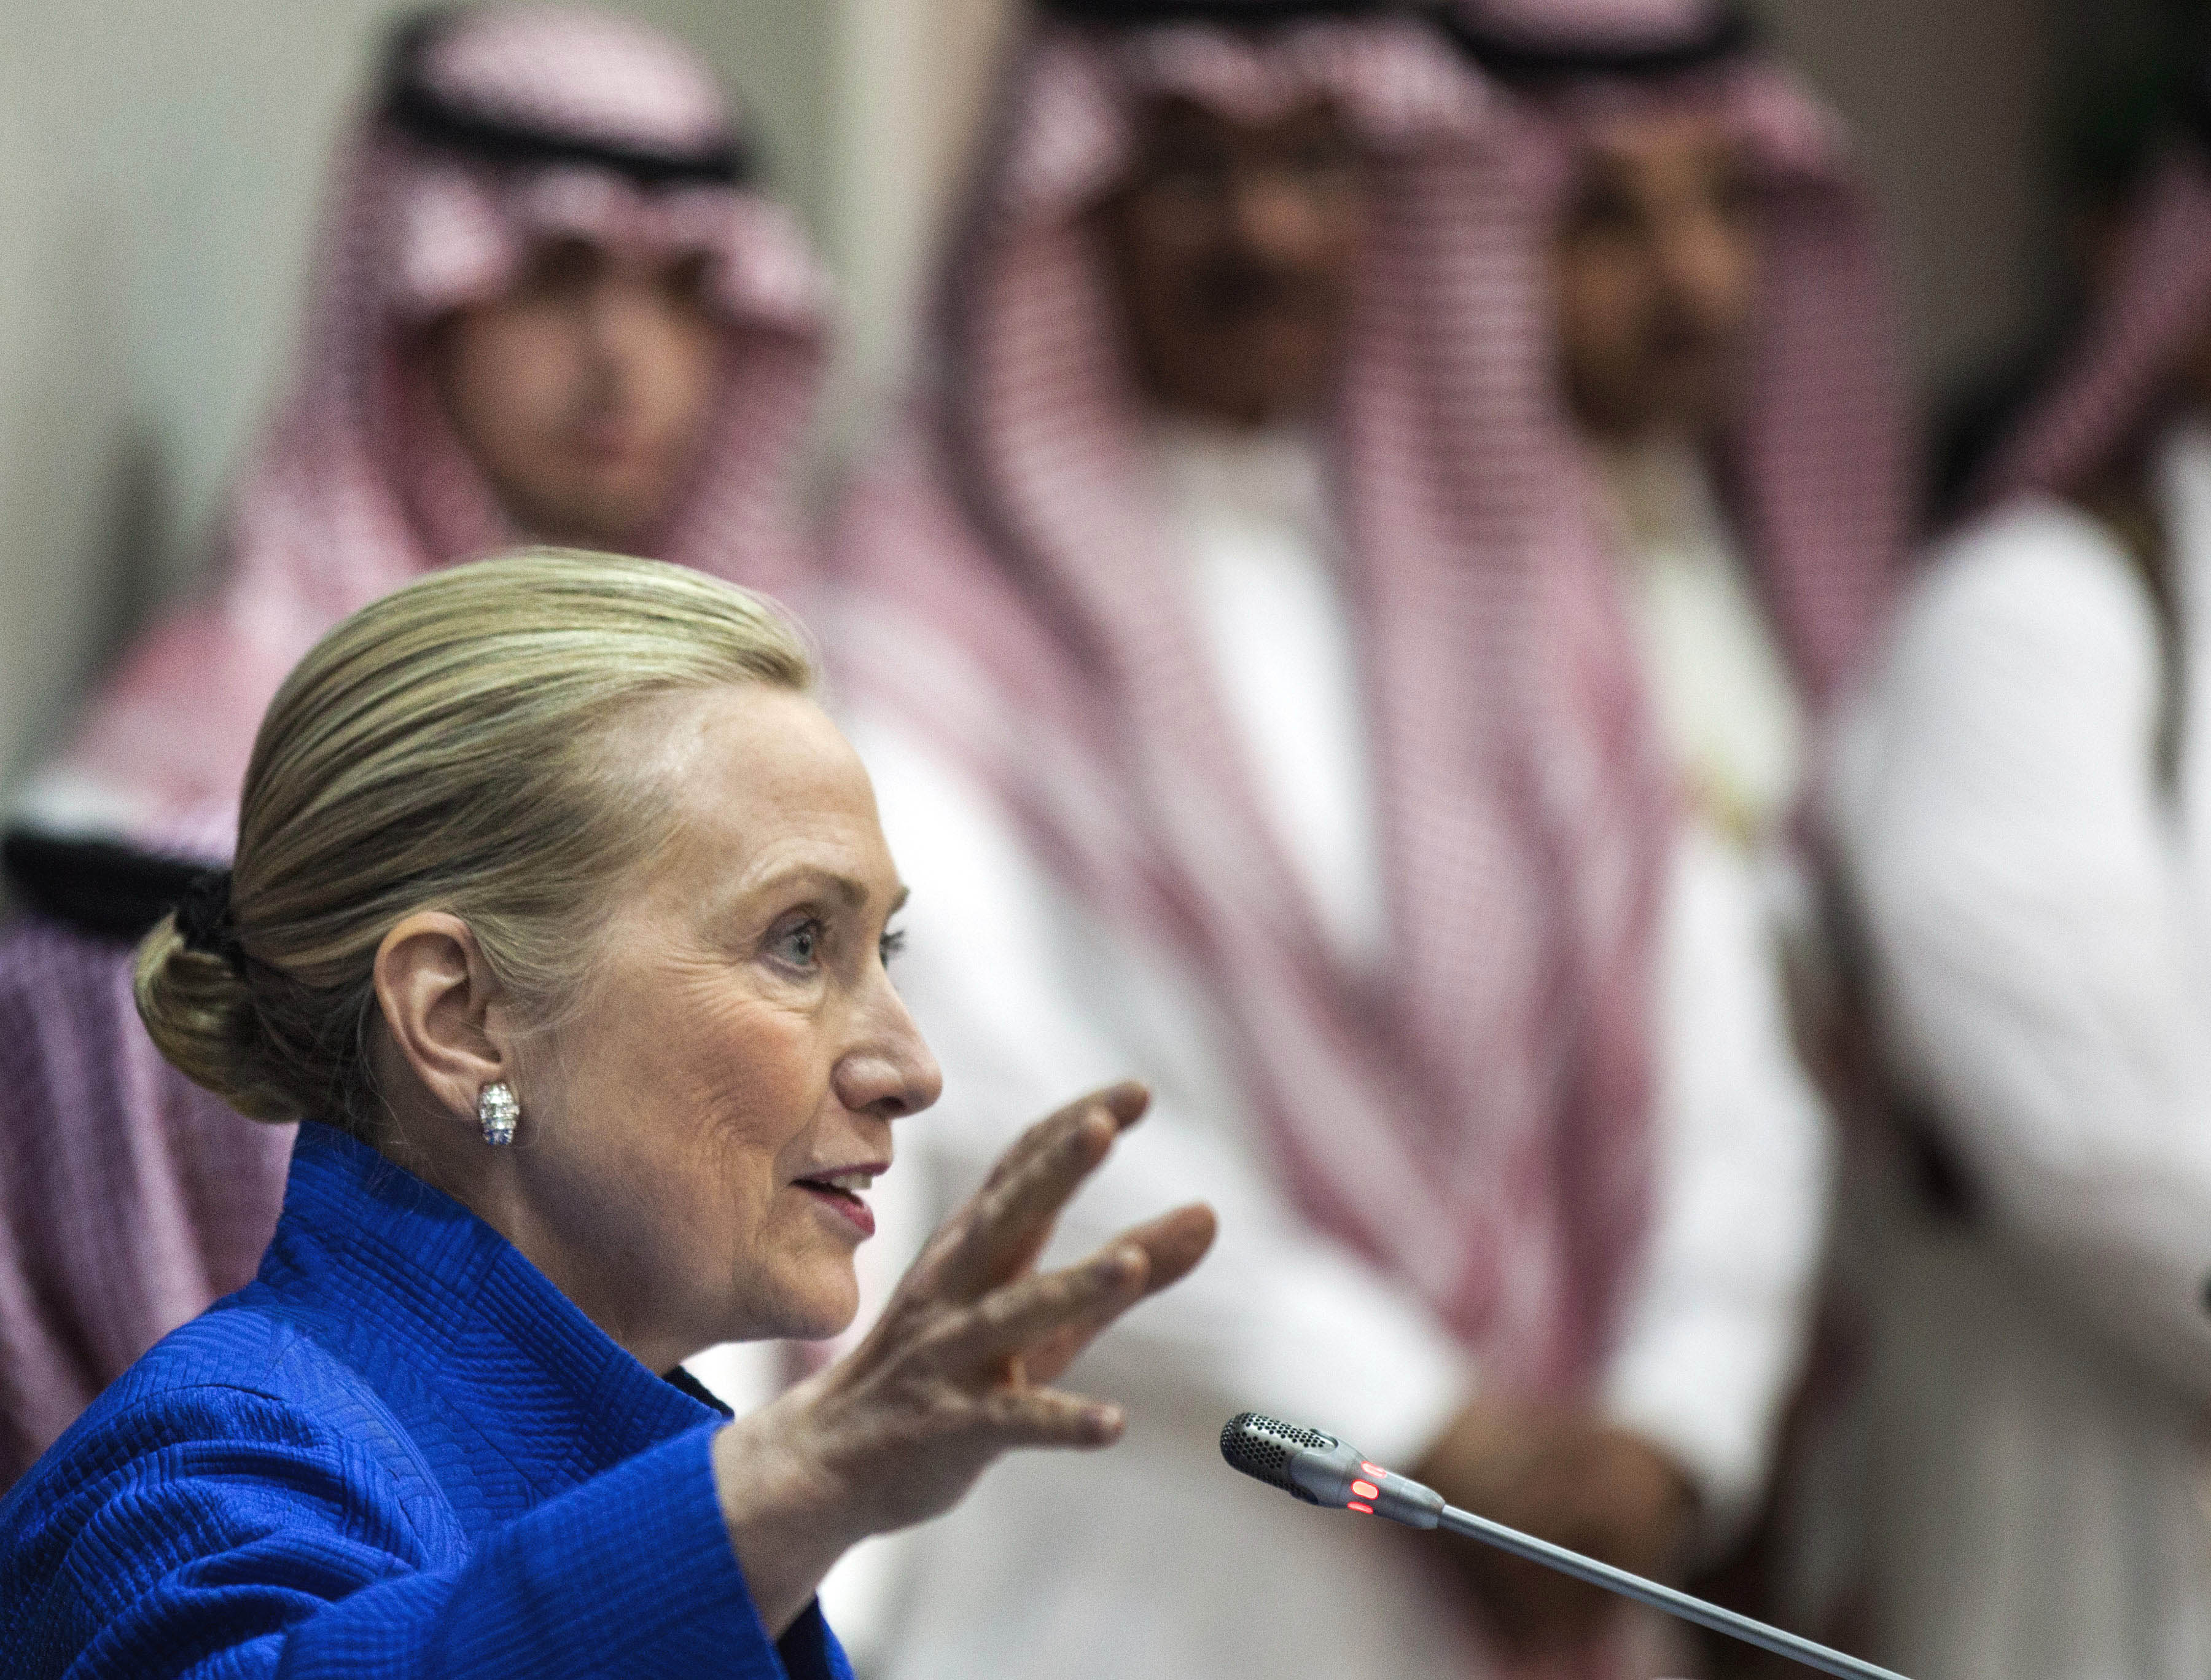 U.S. Secretary of State Hillary Clinton speaks during a joint press conference with Saudi Foreign Minister Prince Saud al-Faisal, not seen, following a U.S.-Gulf Cooperation Council forum at the GCC secretariat in Riyadh, Saudi Arabia on Saturday, March 31, 2012. Clinton geared up for talks in Saudi Arabia about plans for a Gulf missile shield against Iran and ways to press Tehran's ally Syria to stop killing Syrians. (AP Photo/Brendan Smialowski, Pool)